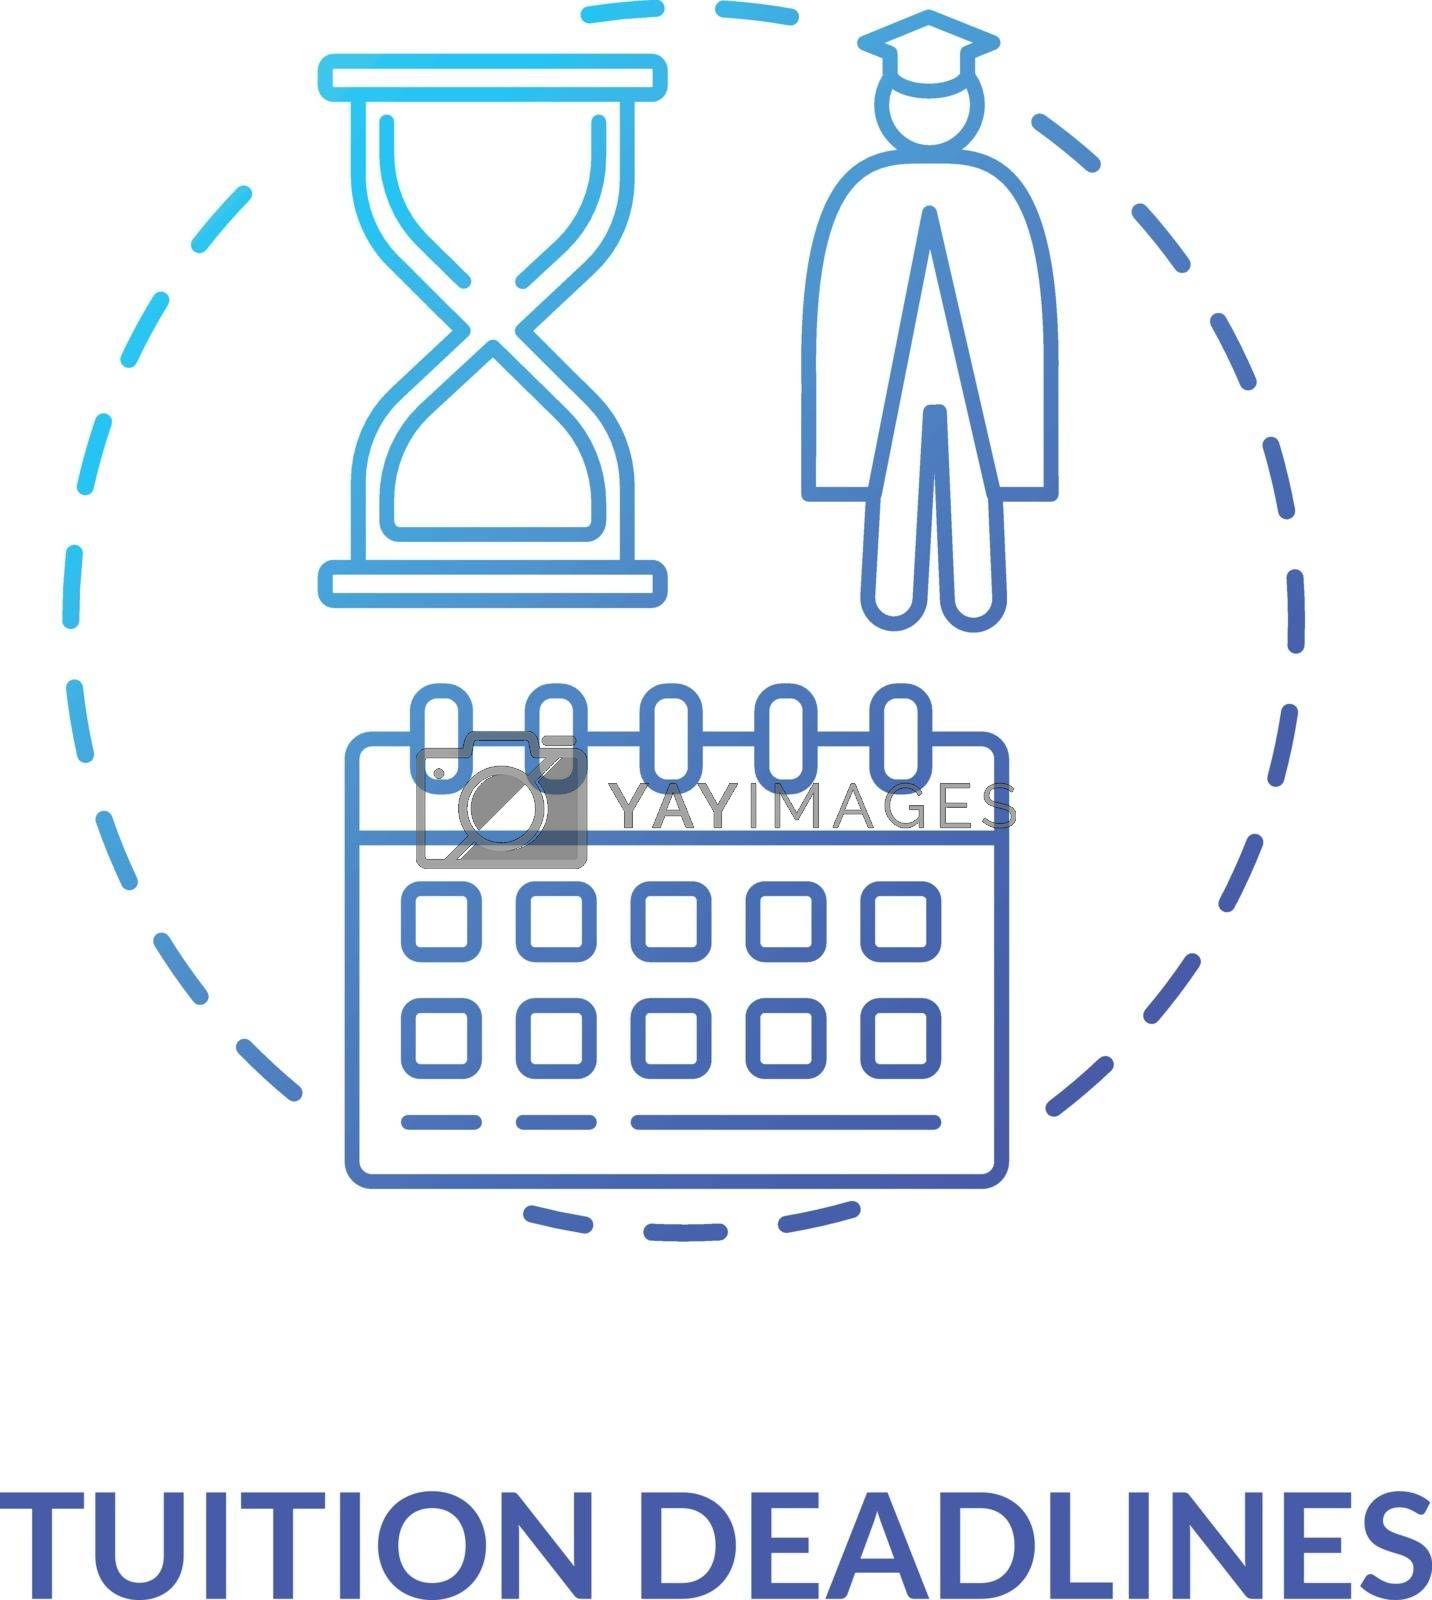 Tuition deadlines concept icon. Students deadlines calendar. College enrollment. Distance education. Univeristy payments idea thin line illustration. Vector isolated outline RGB color drawing